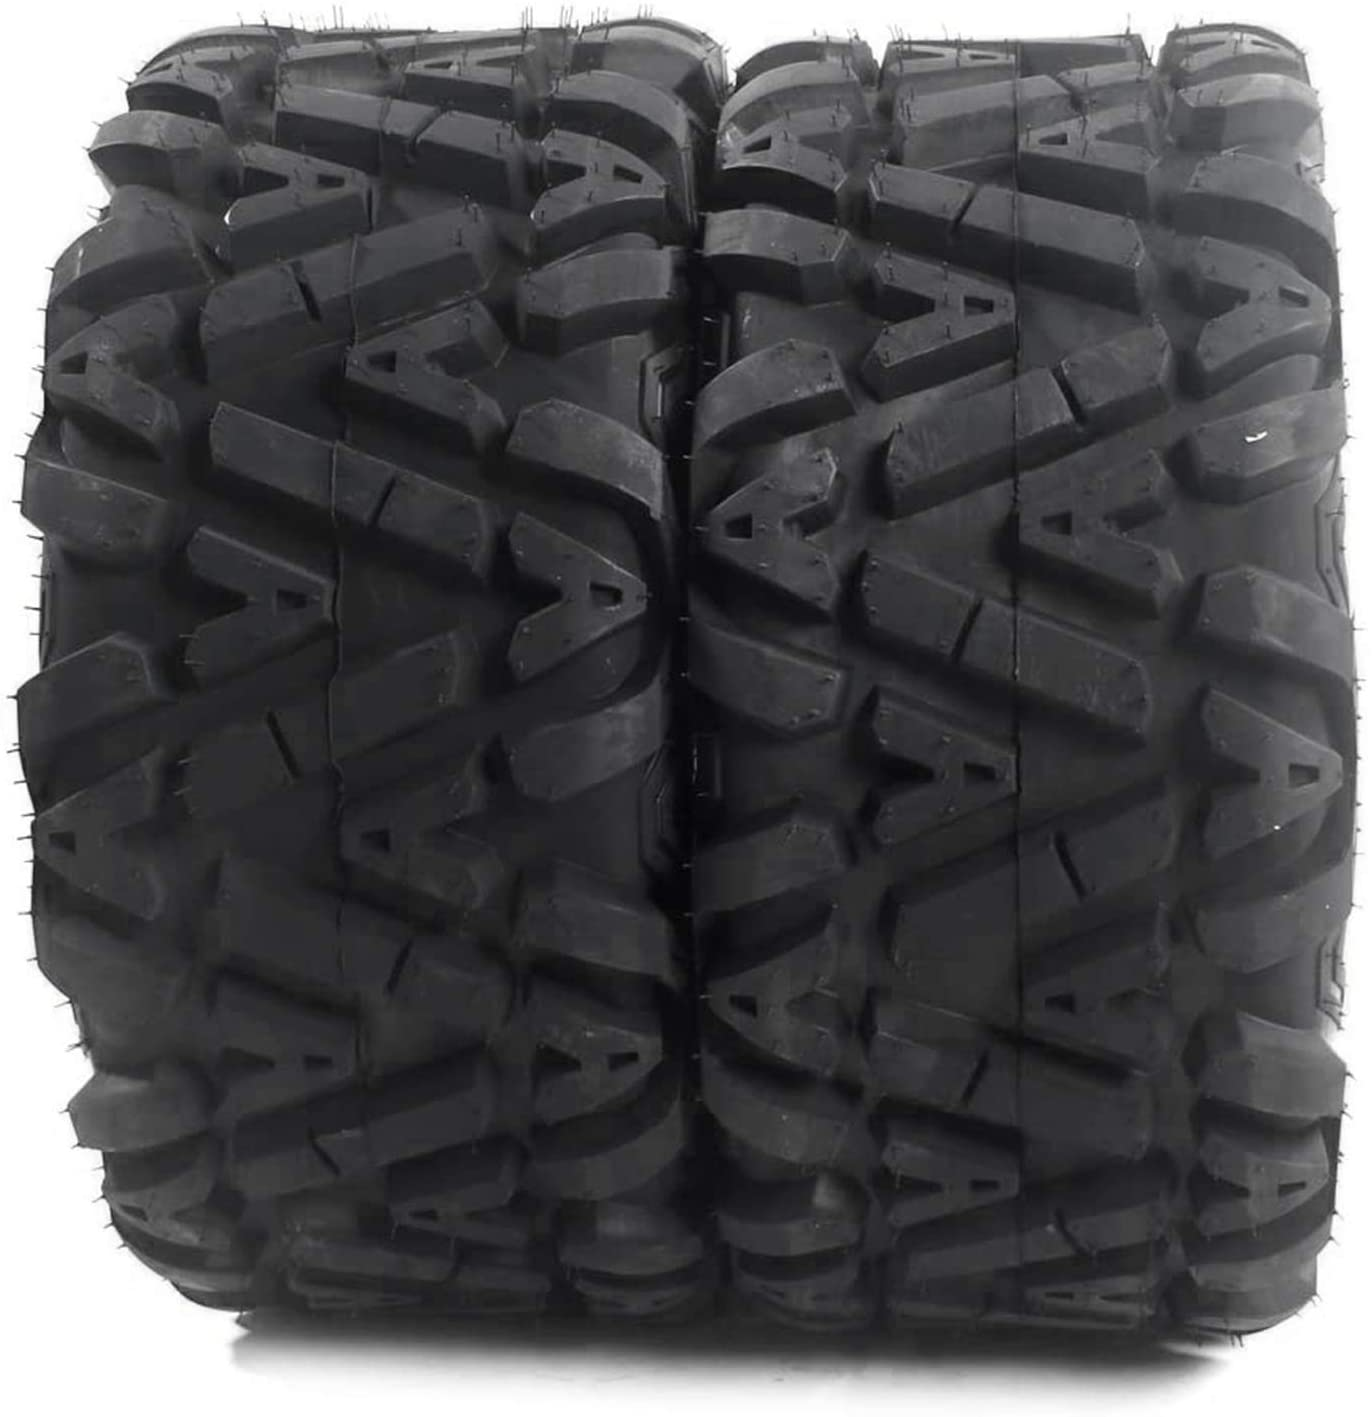 2Pcs St25x10x12 ATV UTV Tires - 25x10-12 6PR Tubeless Rear